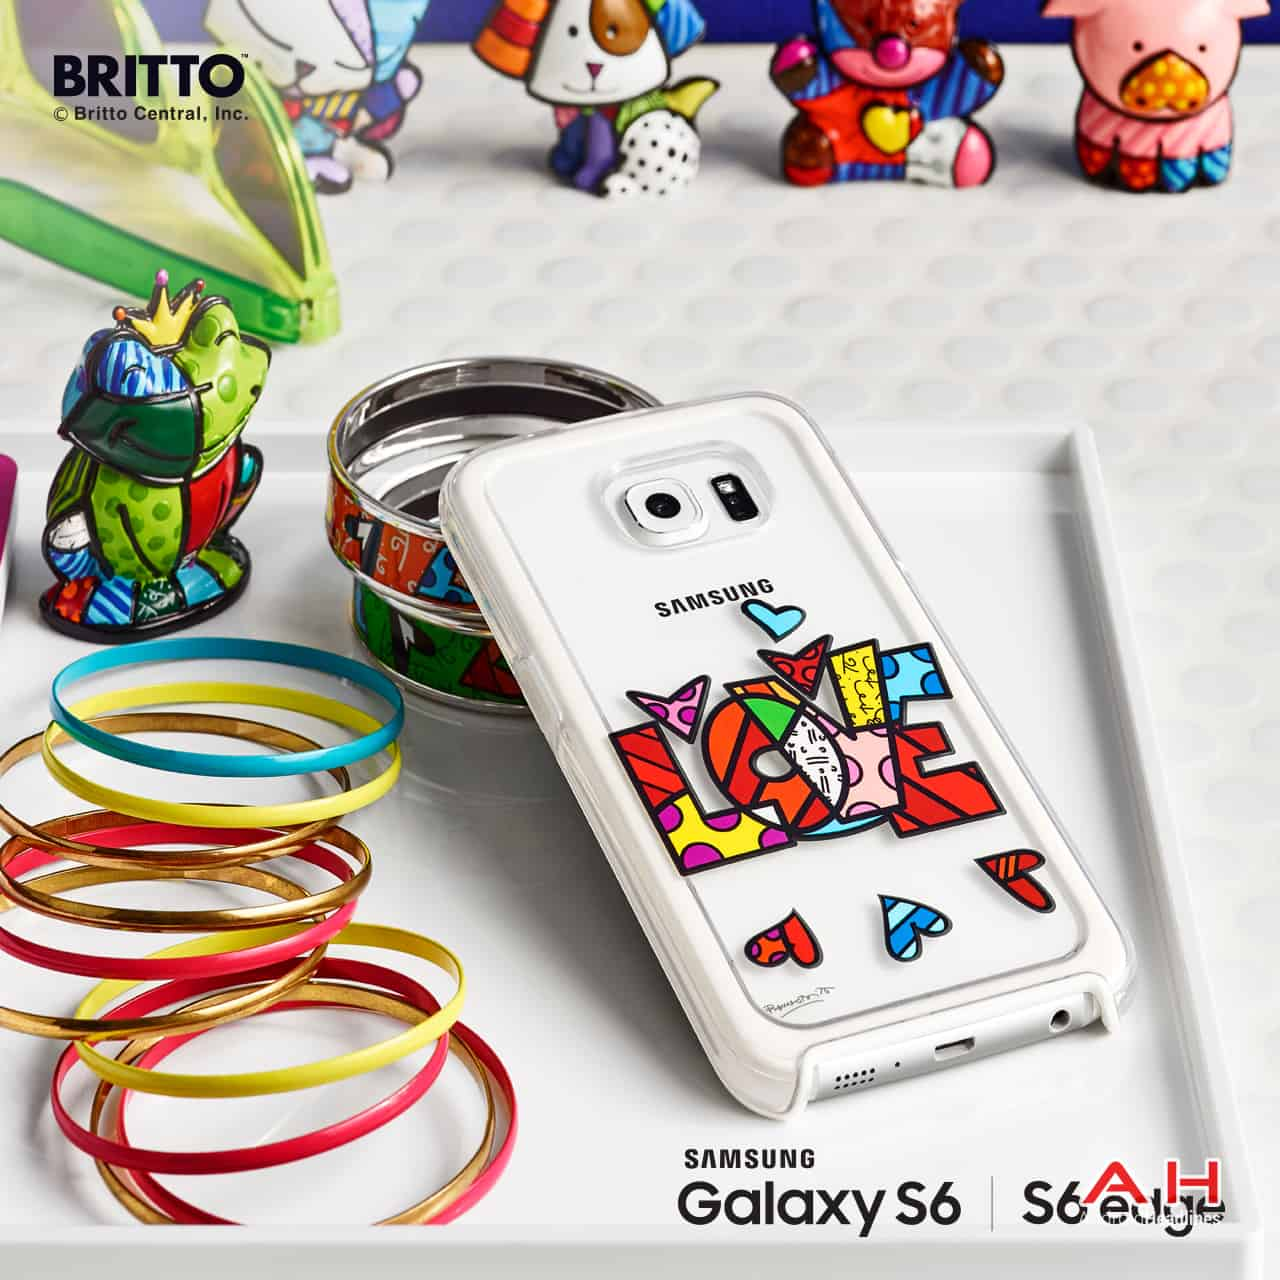 AH Galaxy S6 and S6 Edge Romero Britto-5